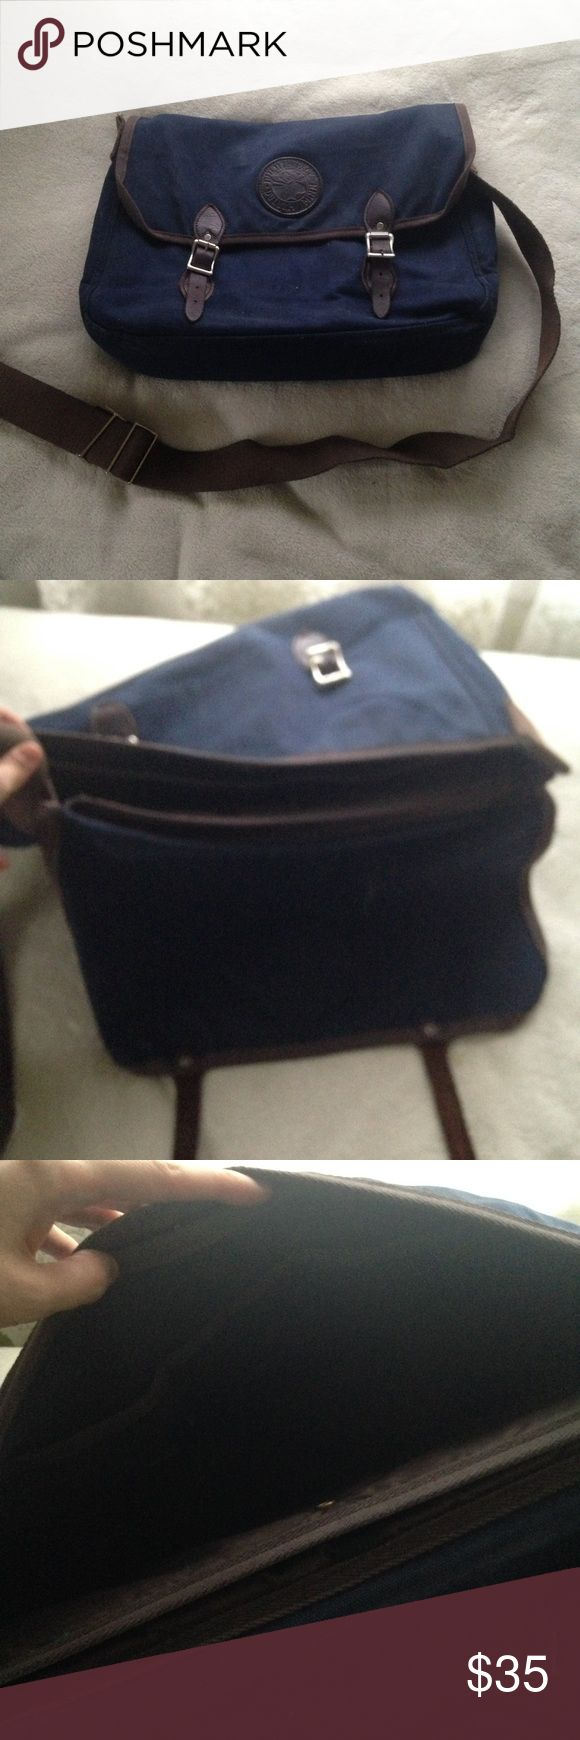 "Duluth Pack Cotton Canvas & Leather Messenger Bag A high quality, durable school or university bag. Perfect for your textbooks, laptop and tablet. The bag is in used condition, so there are signs of wear (see photos) including some fraying on the bottom corners, a white mark on the interior cover (likely washable) and a broken handle. Still very good to use if the handle is repaired. Made in USA. 11"" x 16"" x 4""  university, college, high school, MacBook, iPad, outdoors, rugged, heavy, books…"